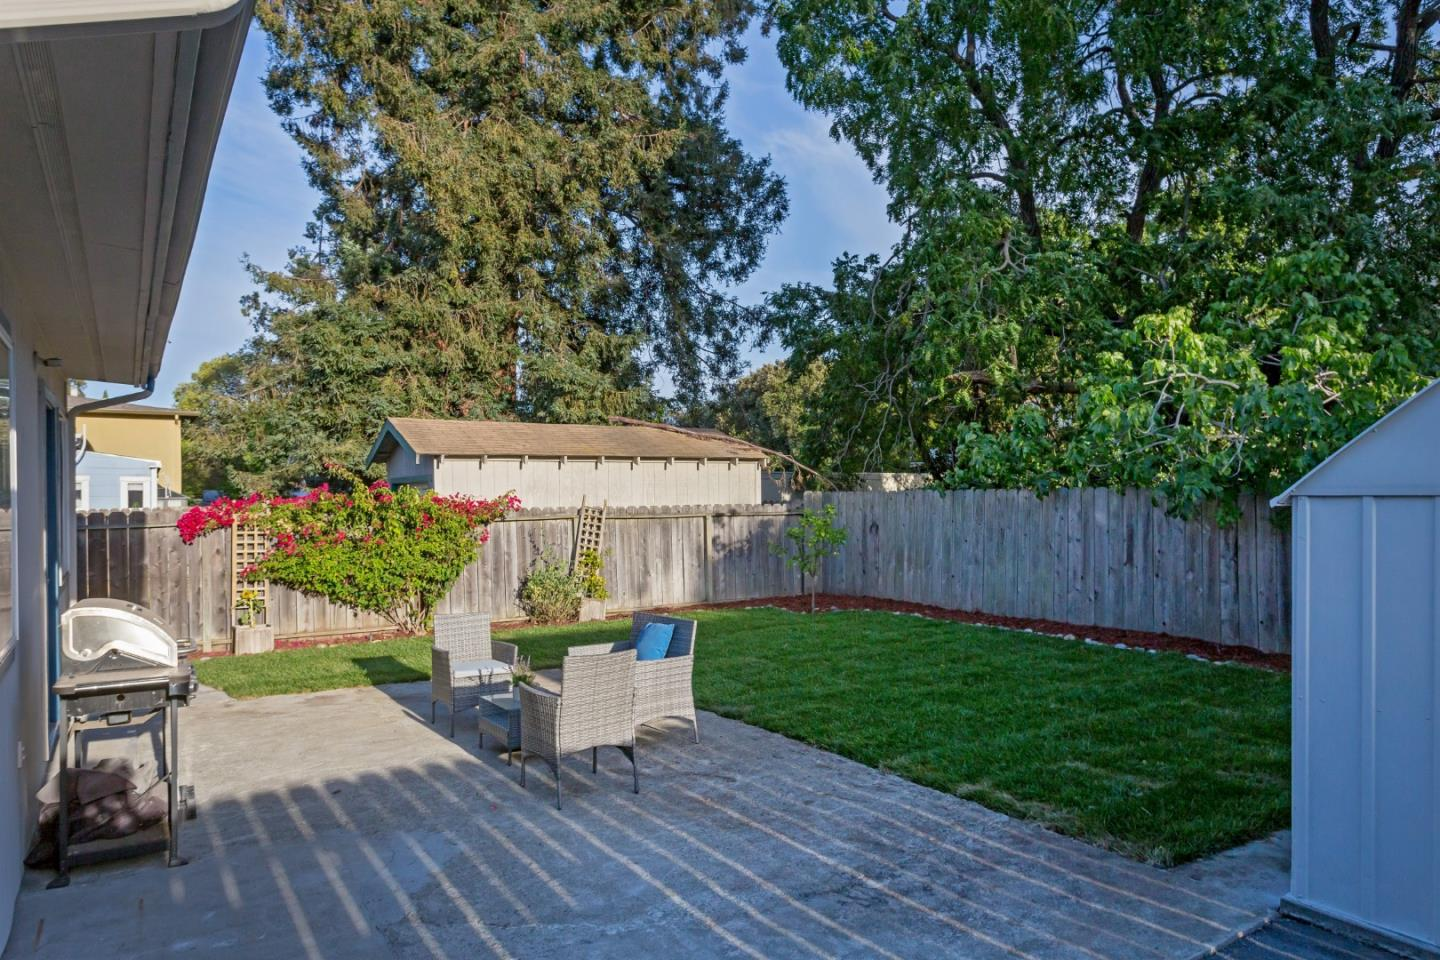 346 Ea Washington Avenue Sunnyvale, CA 94086 - MLS #: ML81722478